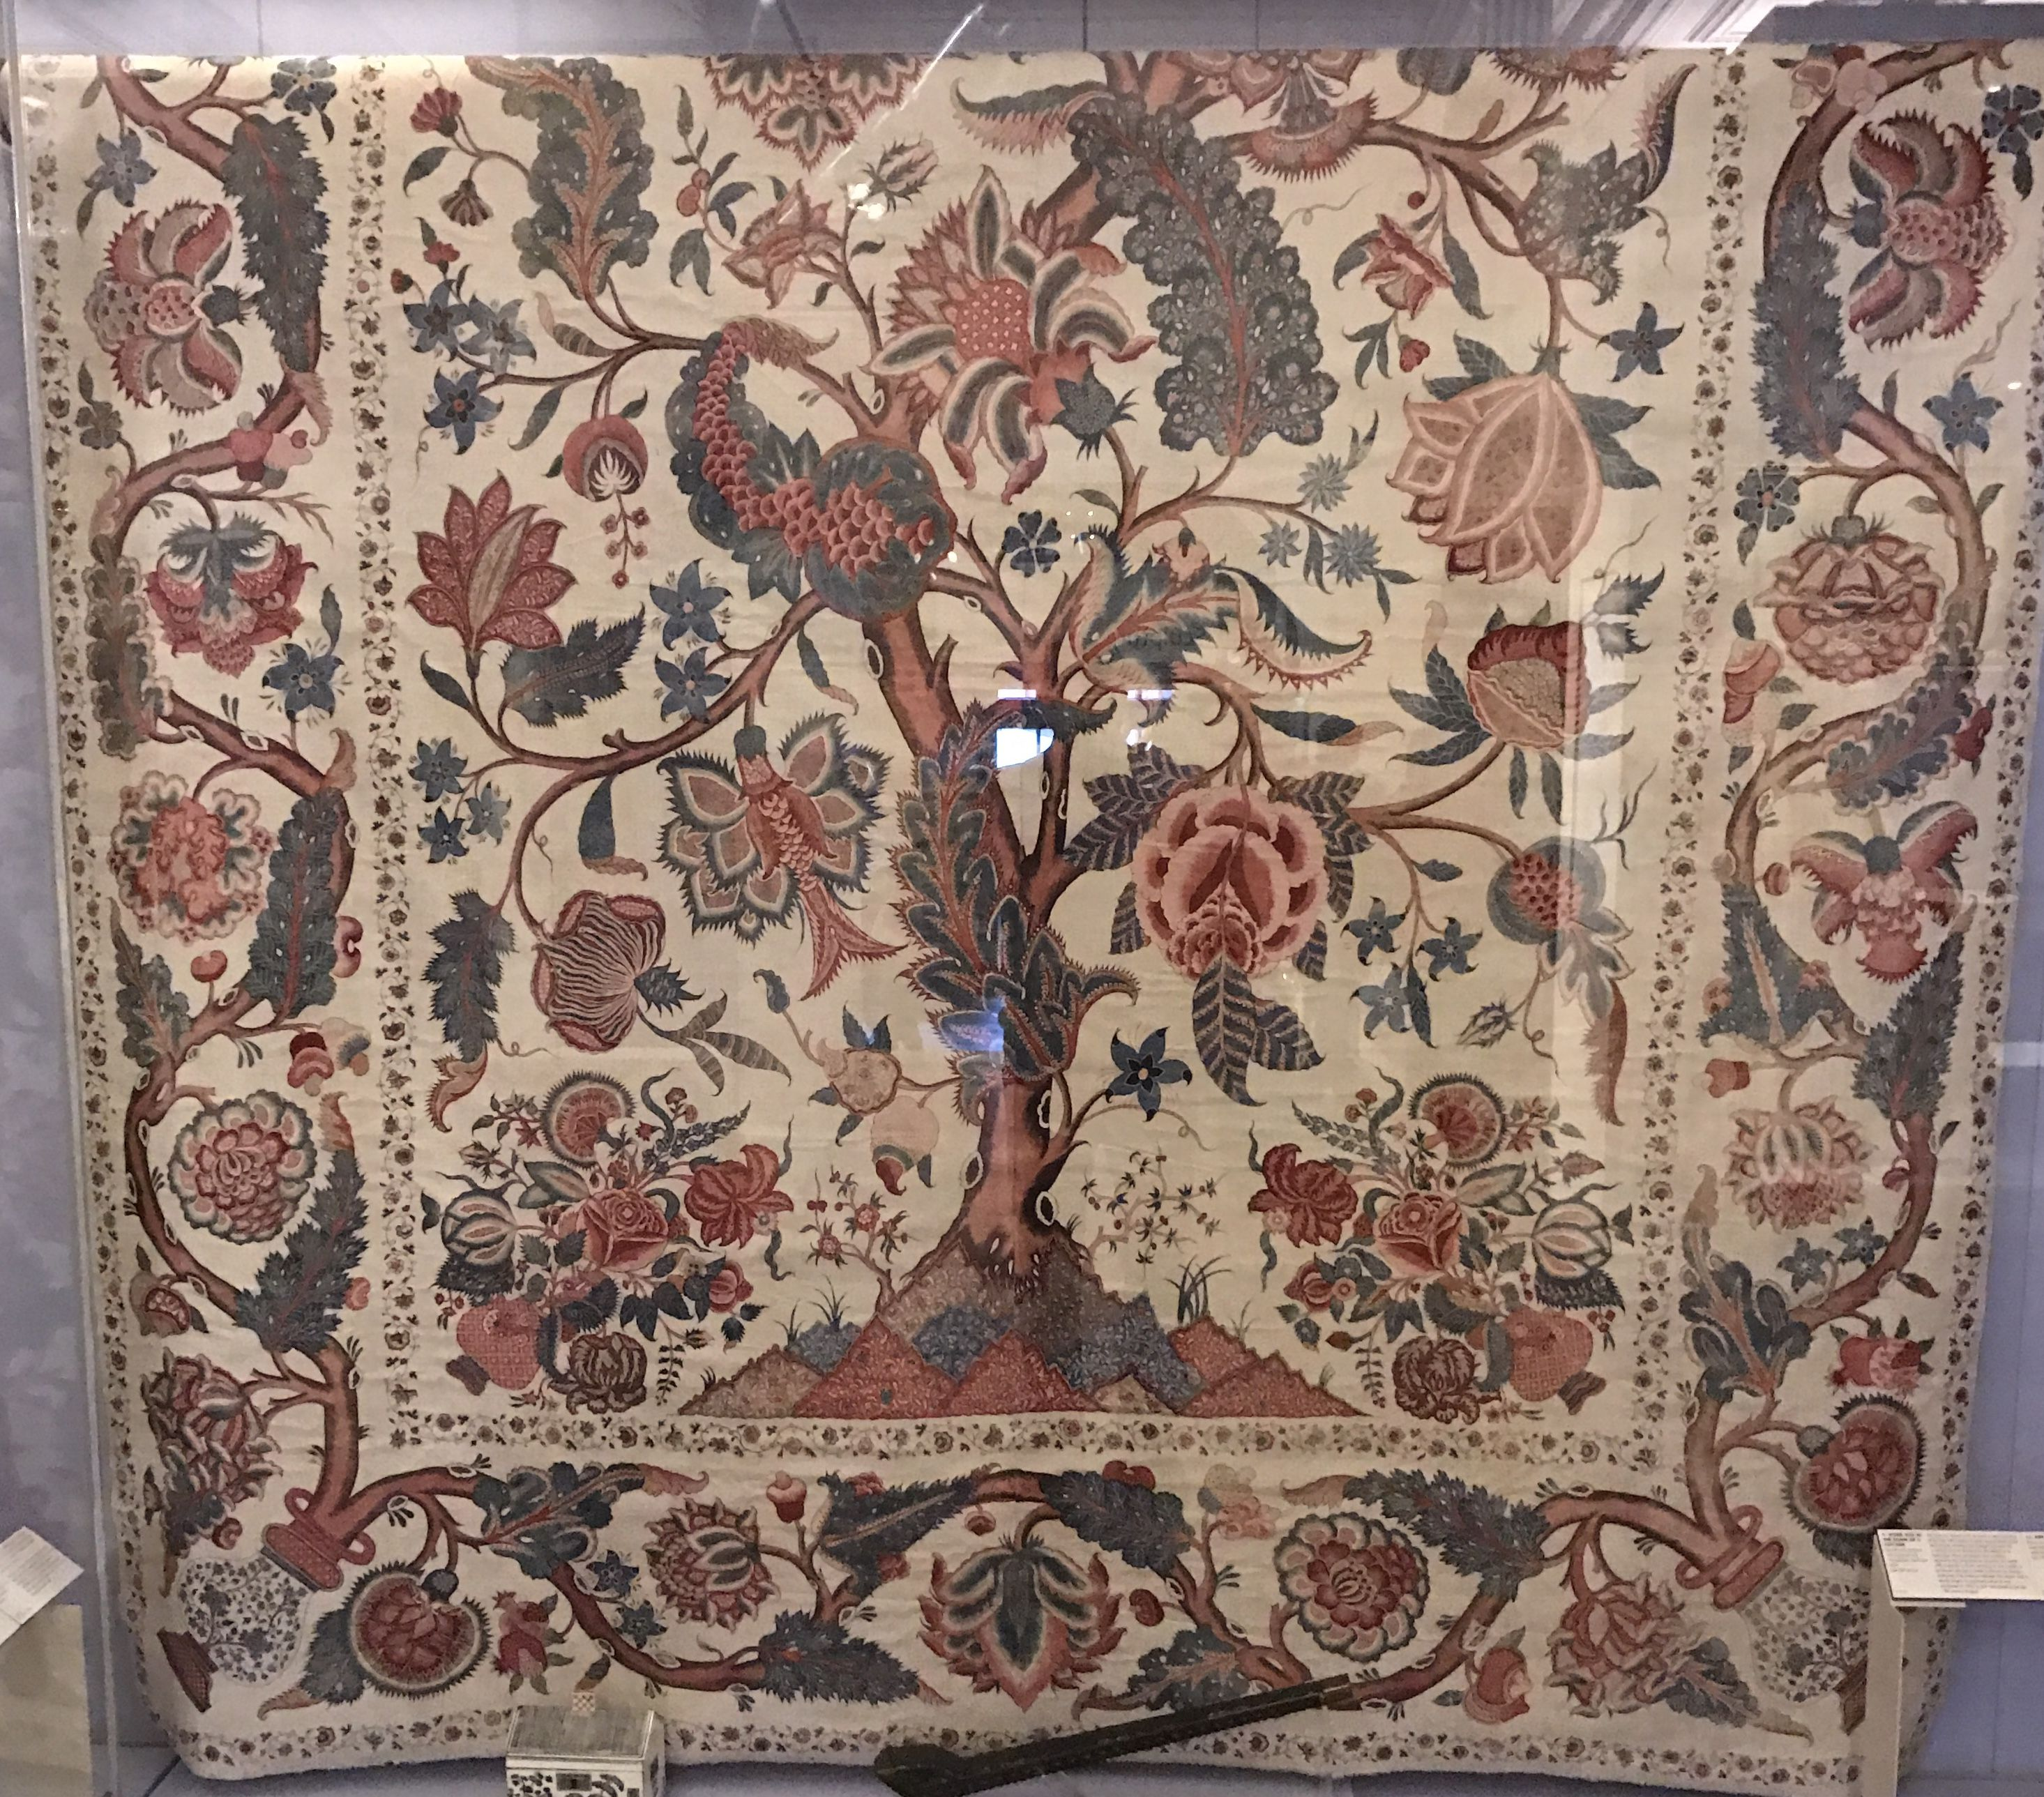 Part Of A Hanging Cotton Mordant Dyed And Resist Dyed Coromandel Coast South East India For The Western Market Age Circa 1700 25 Persian Rug Rugs Antique Rugs